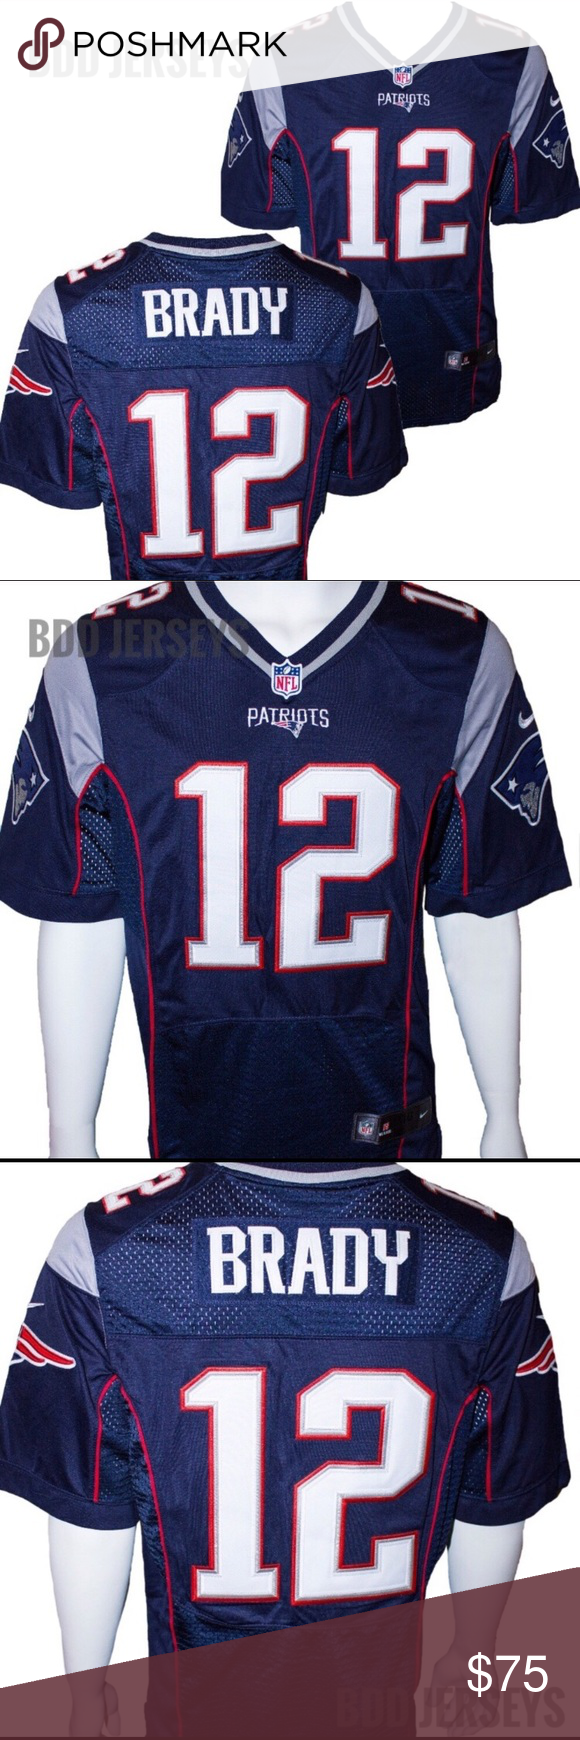 12f2d29ce As Is- New England Patriots Tom Brady New England Patriots Tom Brady  12  blue On Field Nike jersey Size Medium. Brand new with tags attached.